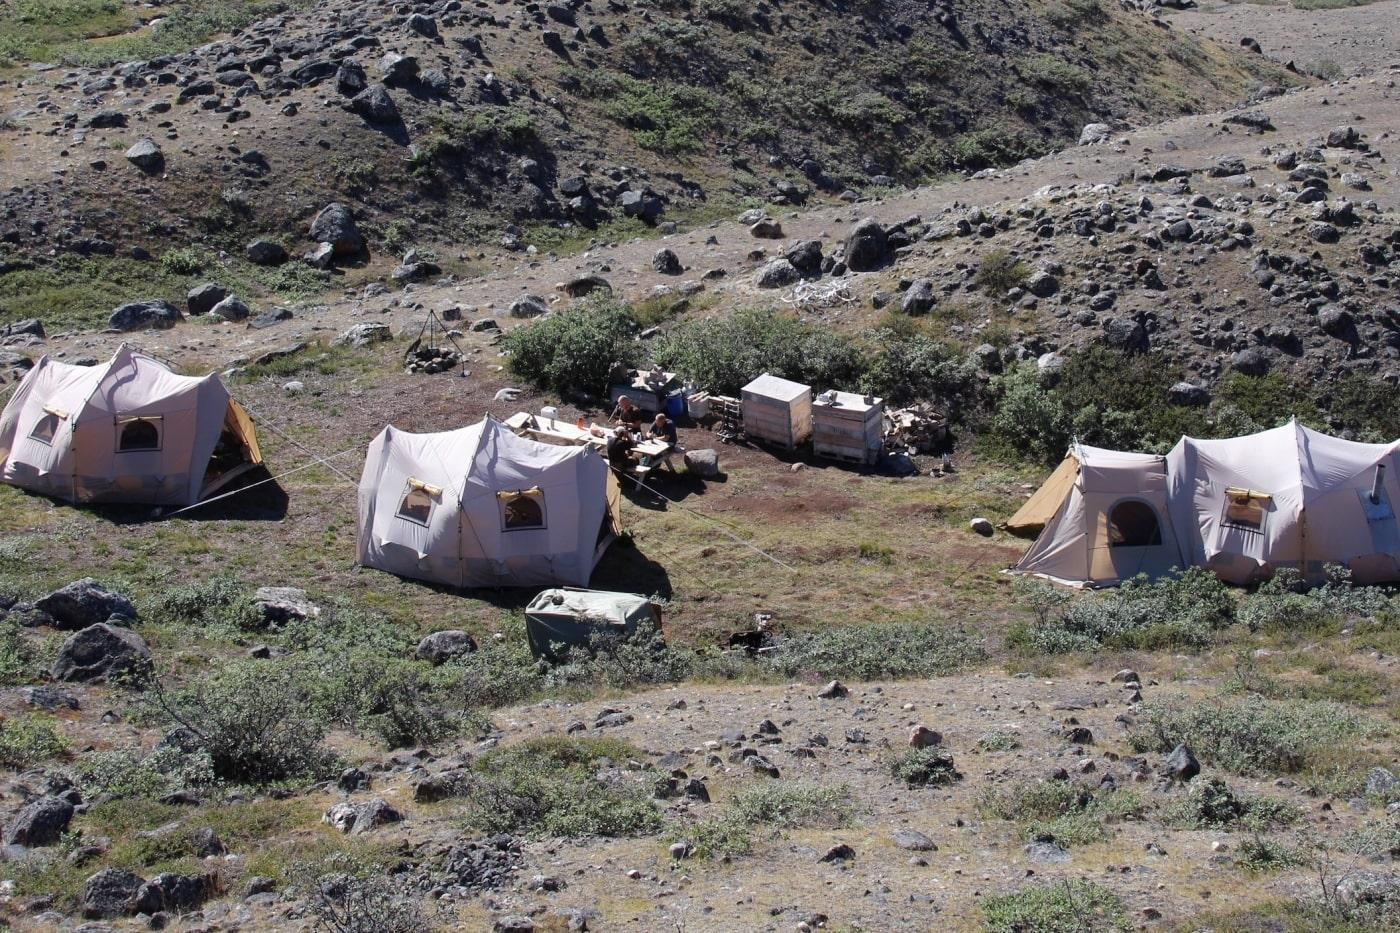 Summer camp in Kangerlussuaq with tents two people sitting at table eating. Photo by North Safari Travel